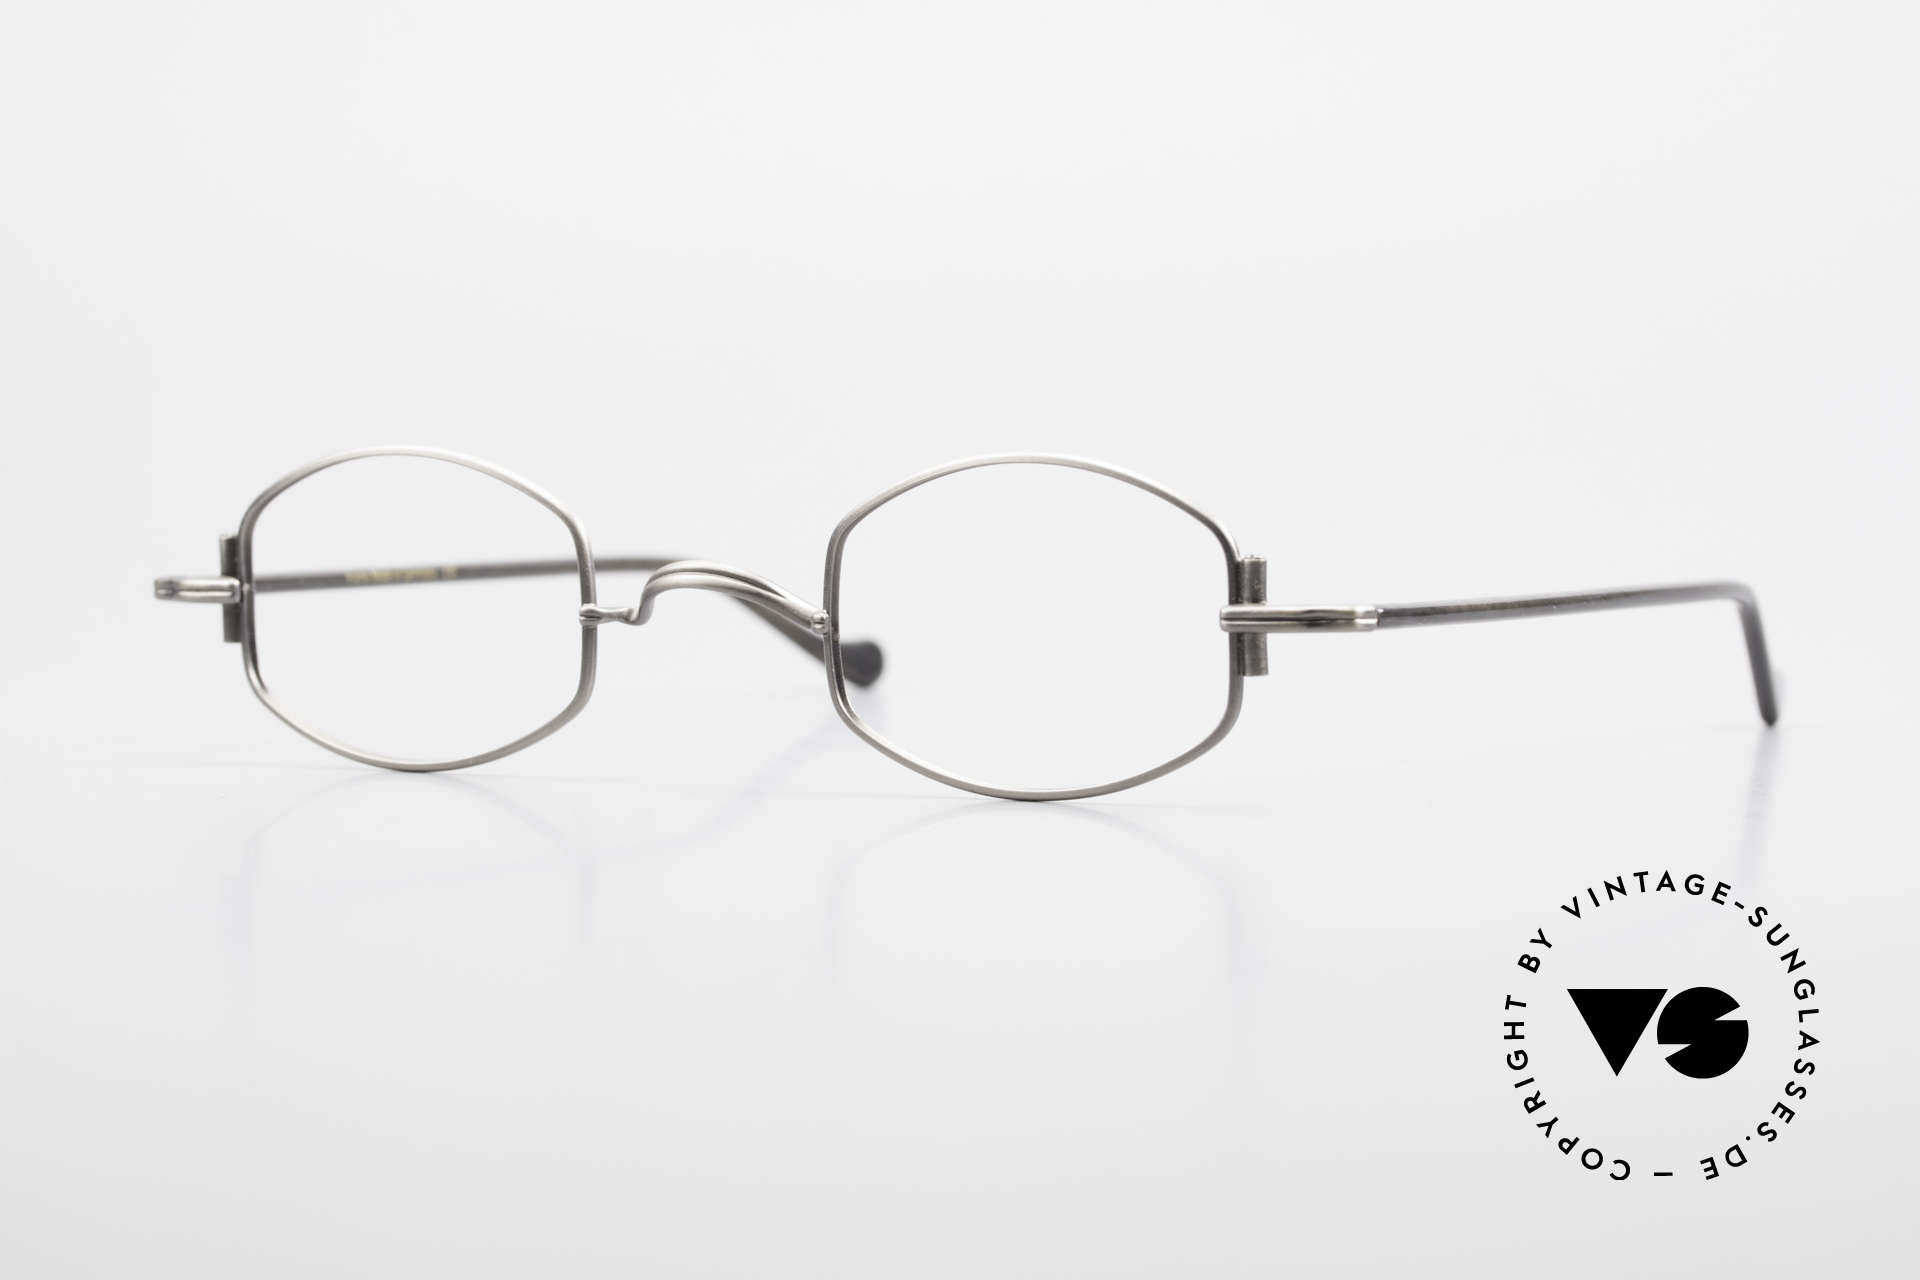 """Lunor XA 03 Extraordinary Eyeglass Design, Lunor: shortcut for French """"Lunette d'Or"""" (gold glasses), Made for Men and Women"""